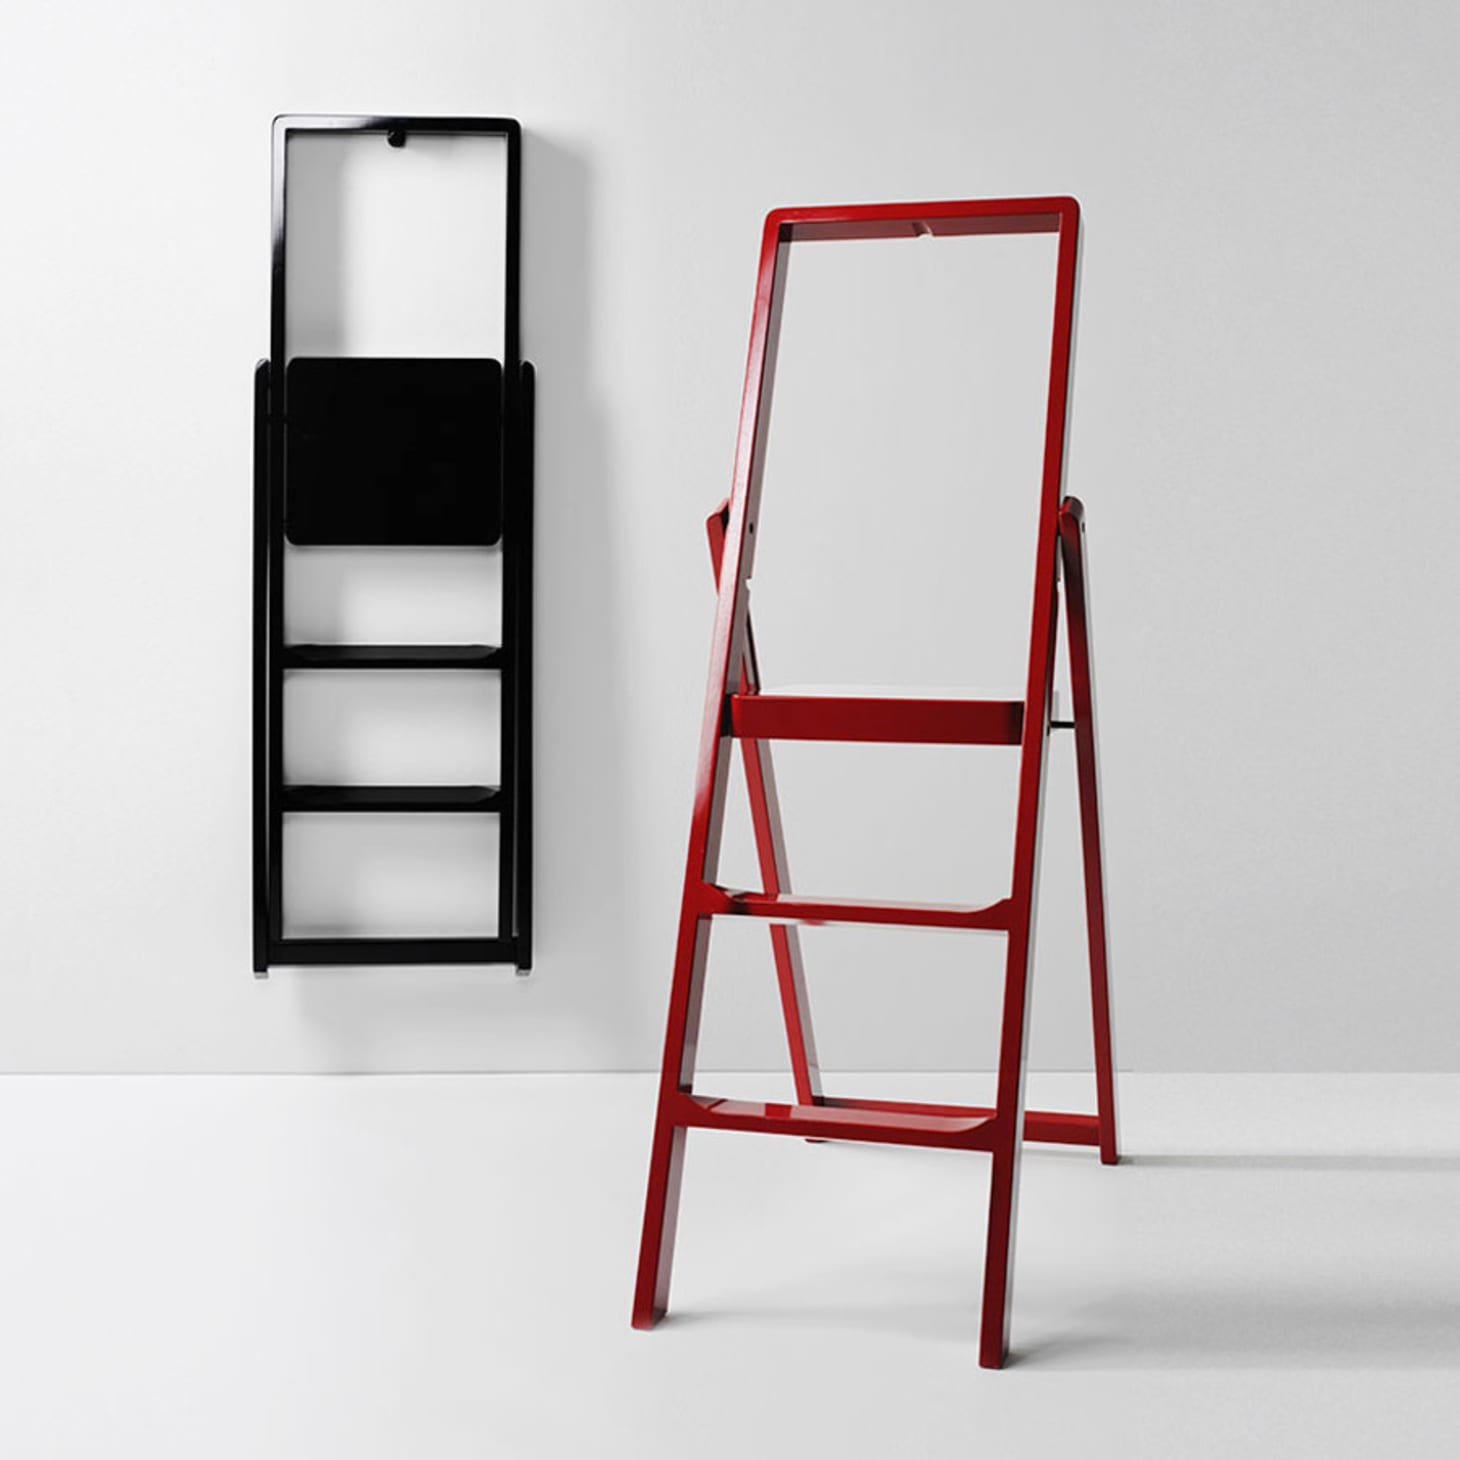 Peachy Best Step Stools And Ladders To Help You Reach New Heights Camellatalisay Diy Chair Ideas Camellatalisaycom